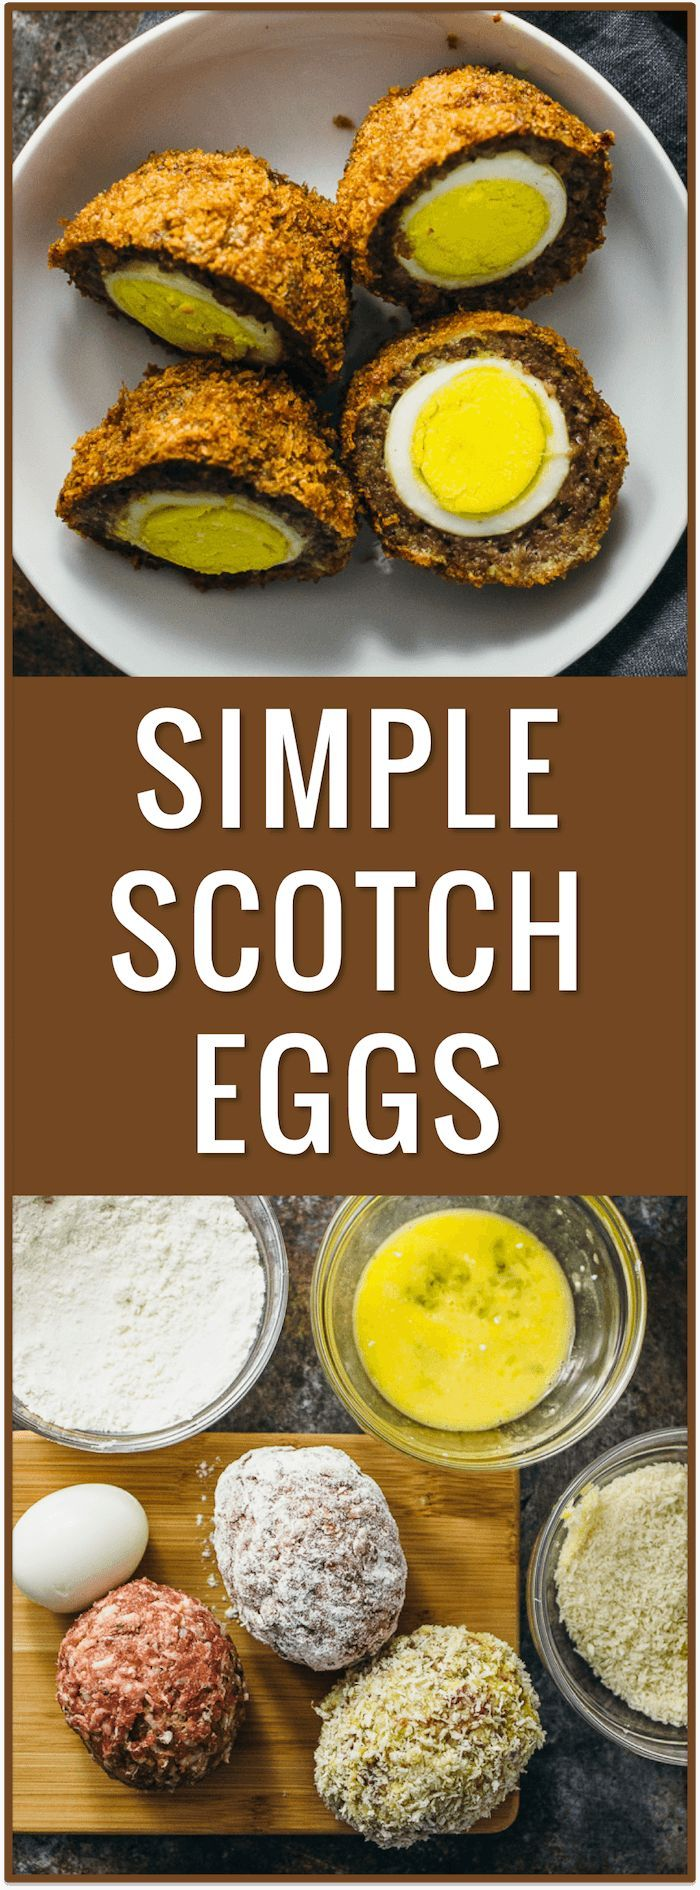 simple easy scotch eggs, baked, fried, sauce, scottish, irish, british, ground meat, pork sausage, dinner recipe, protein, portable snack via /savory_tooth/